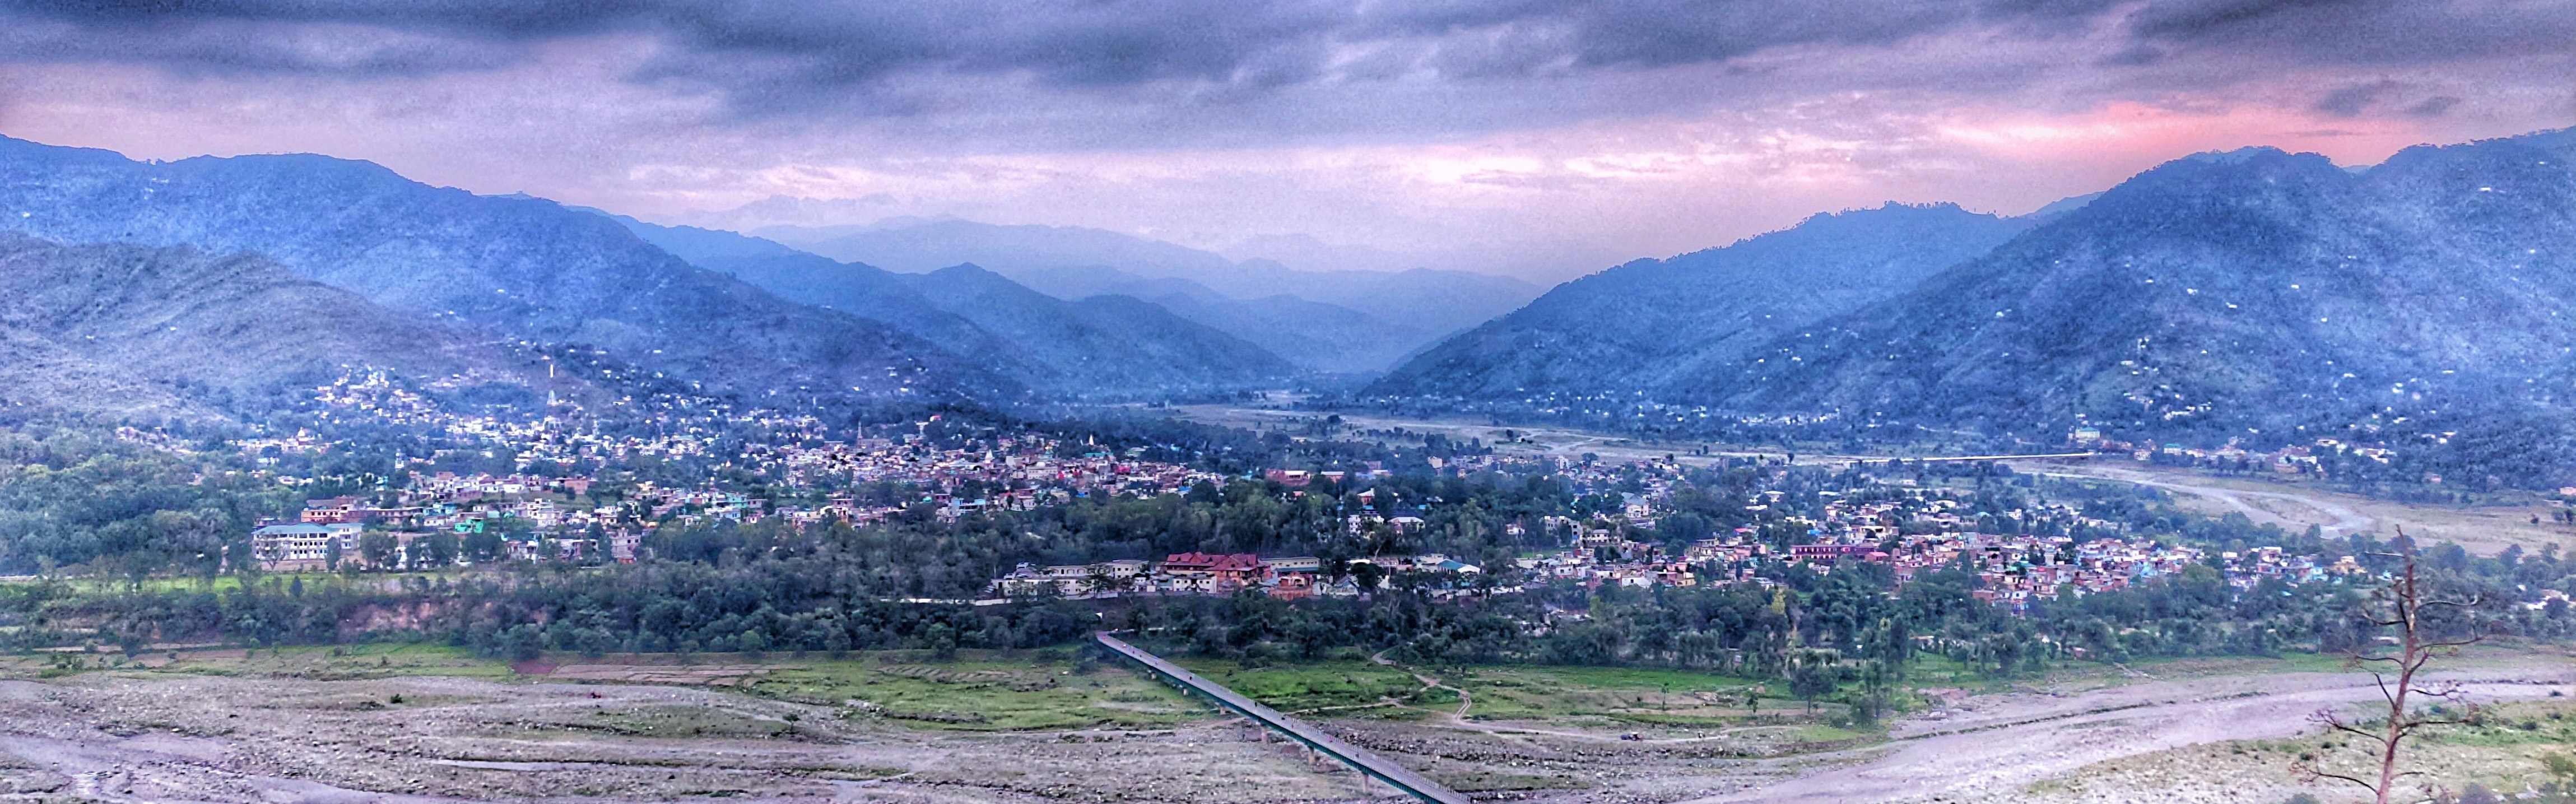 ViewPoonchCity